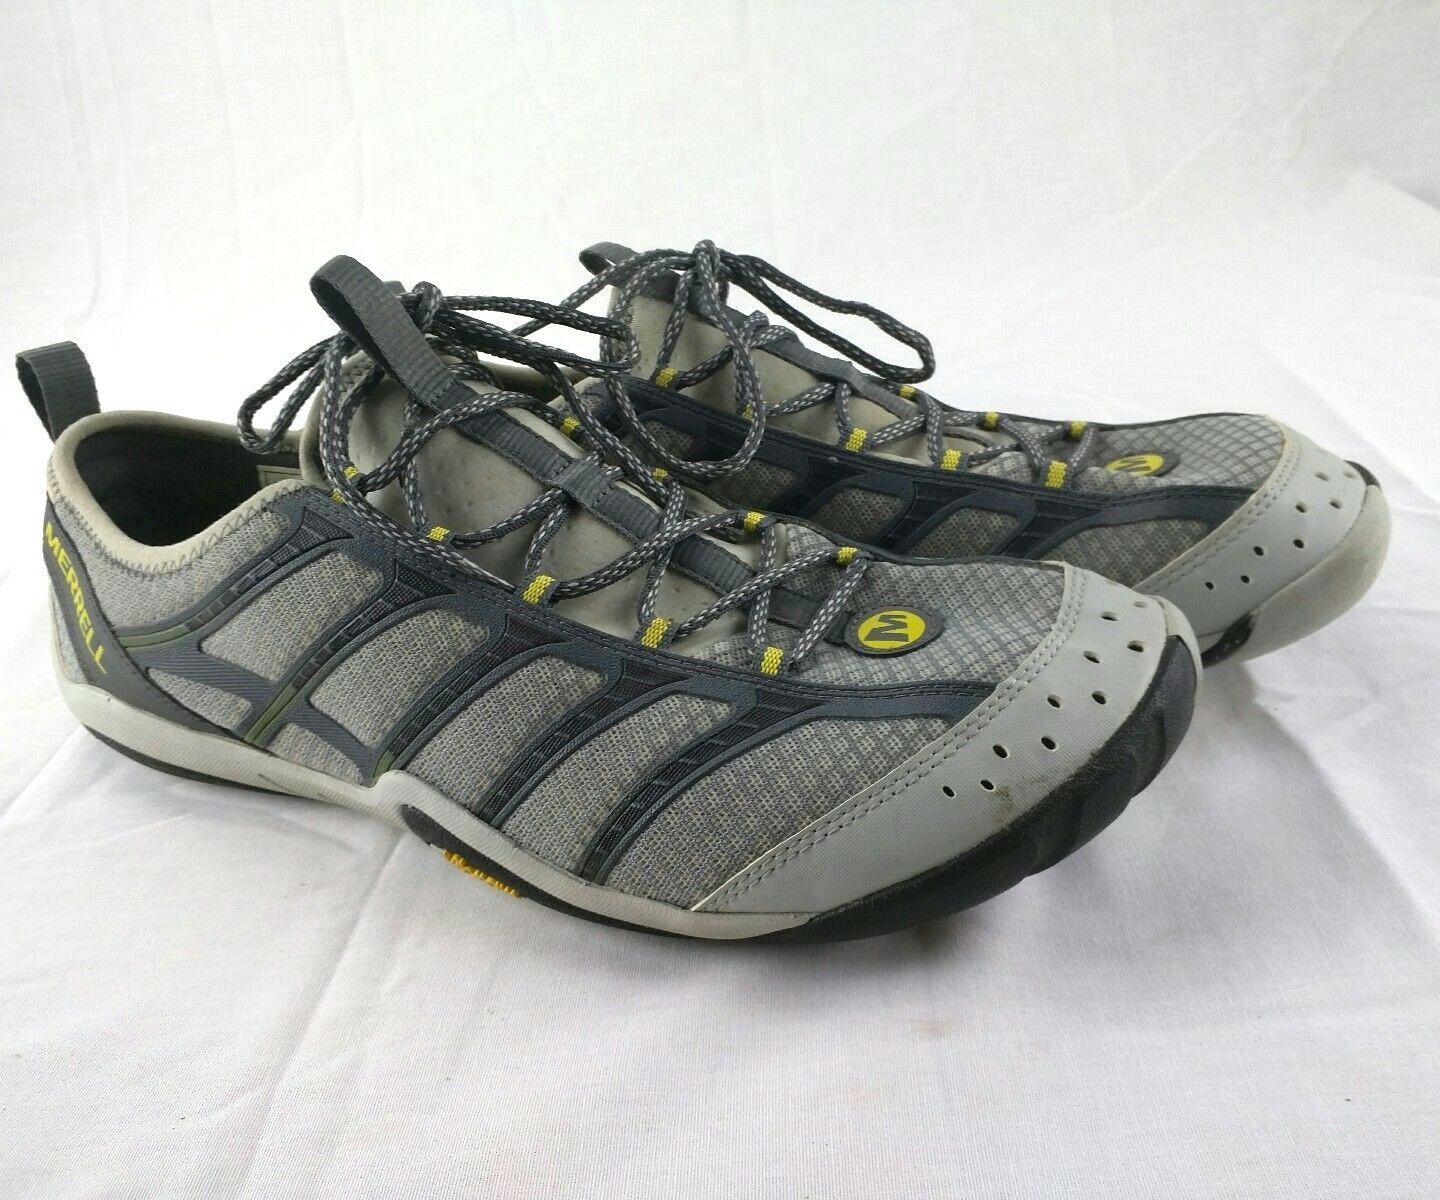 Merrell Ice Ice Ice Torrent Glove J 41059 Uomo Sz 14 Running scarpe Excell. Condition cd0e37